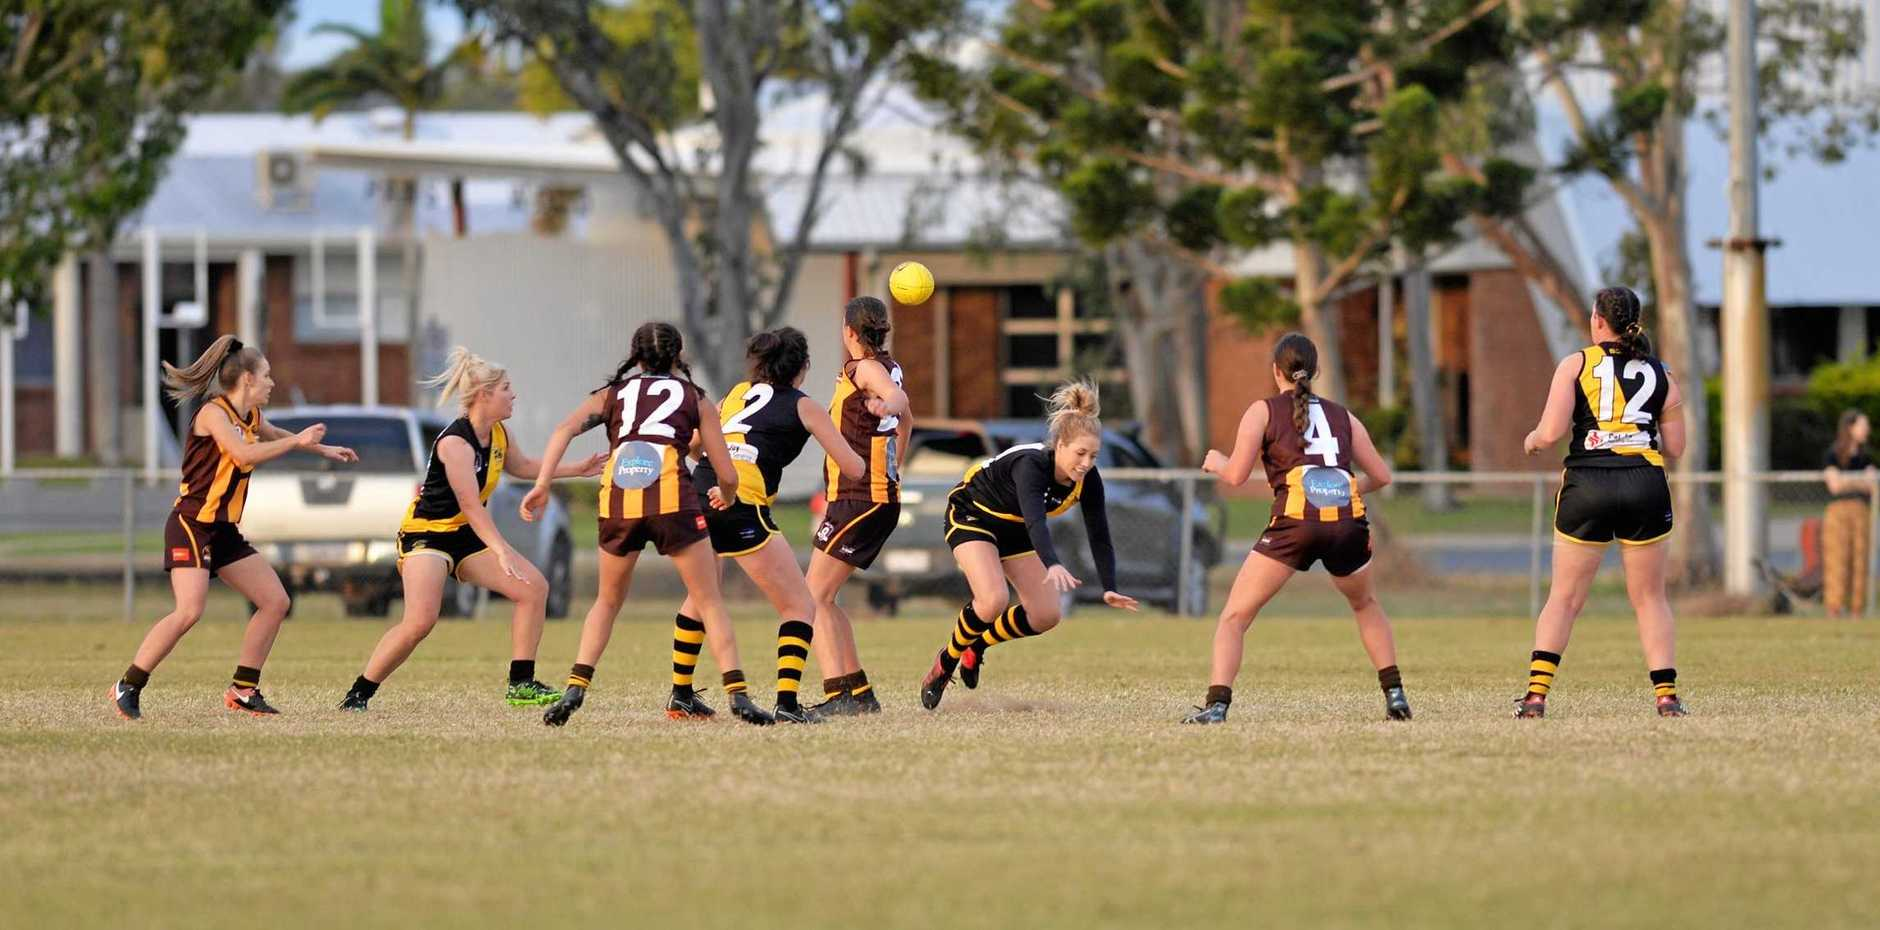 Bakers Creek came from behind in a thriller to defeat Mackay City by two points in the AFL Mackay Women's Qualifying Final at Zeolla Park on Saturday.